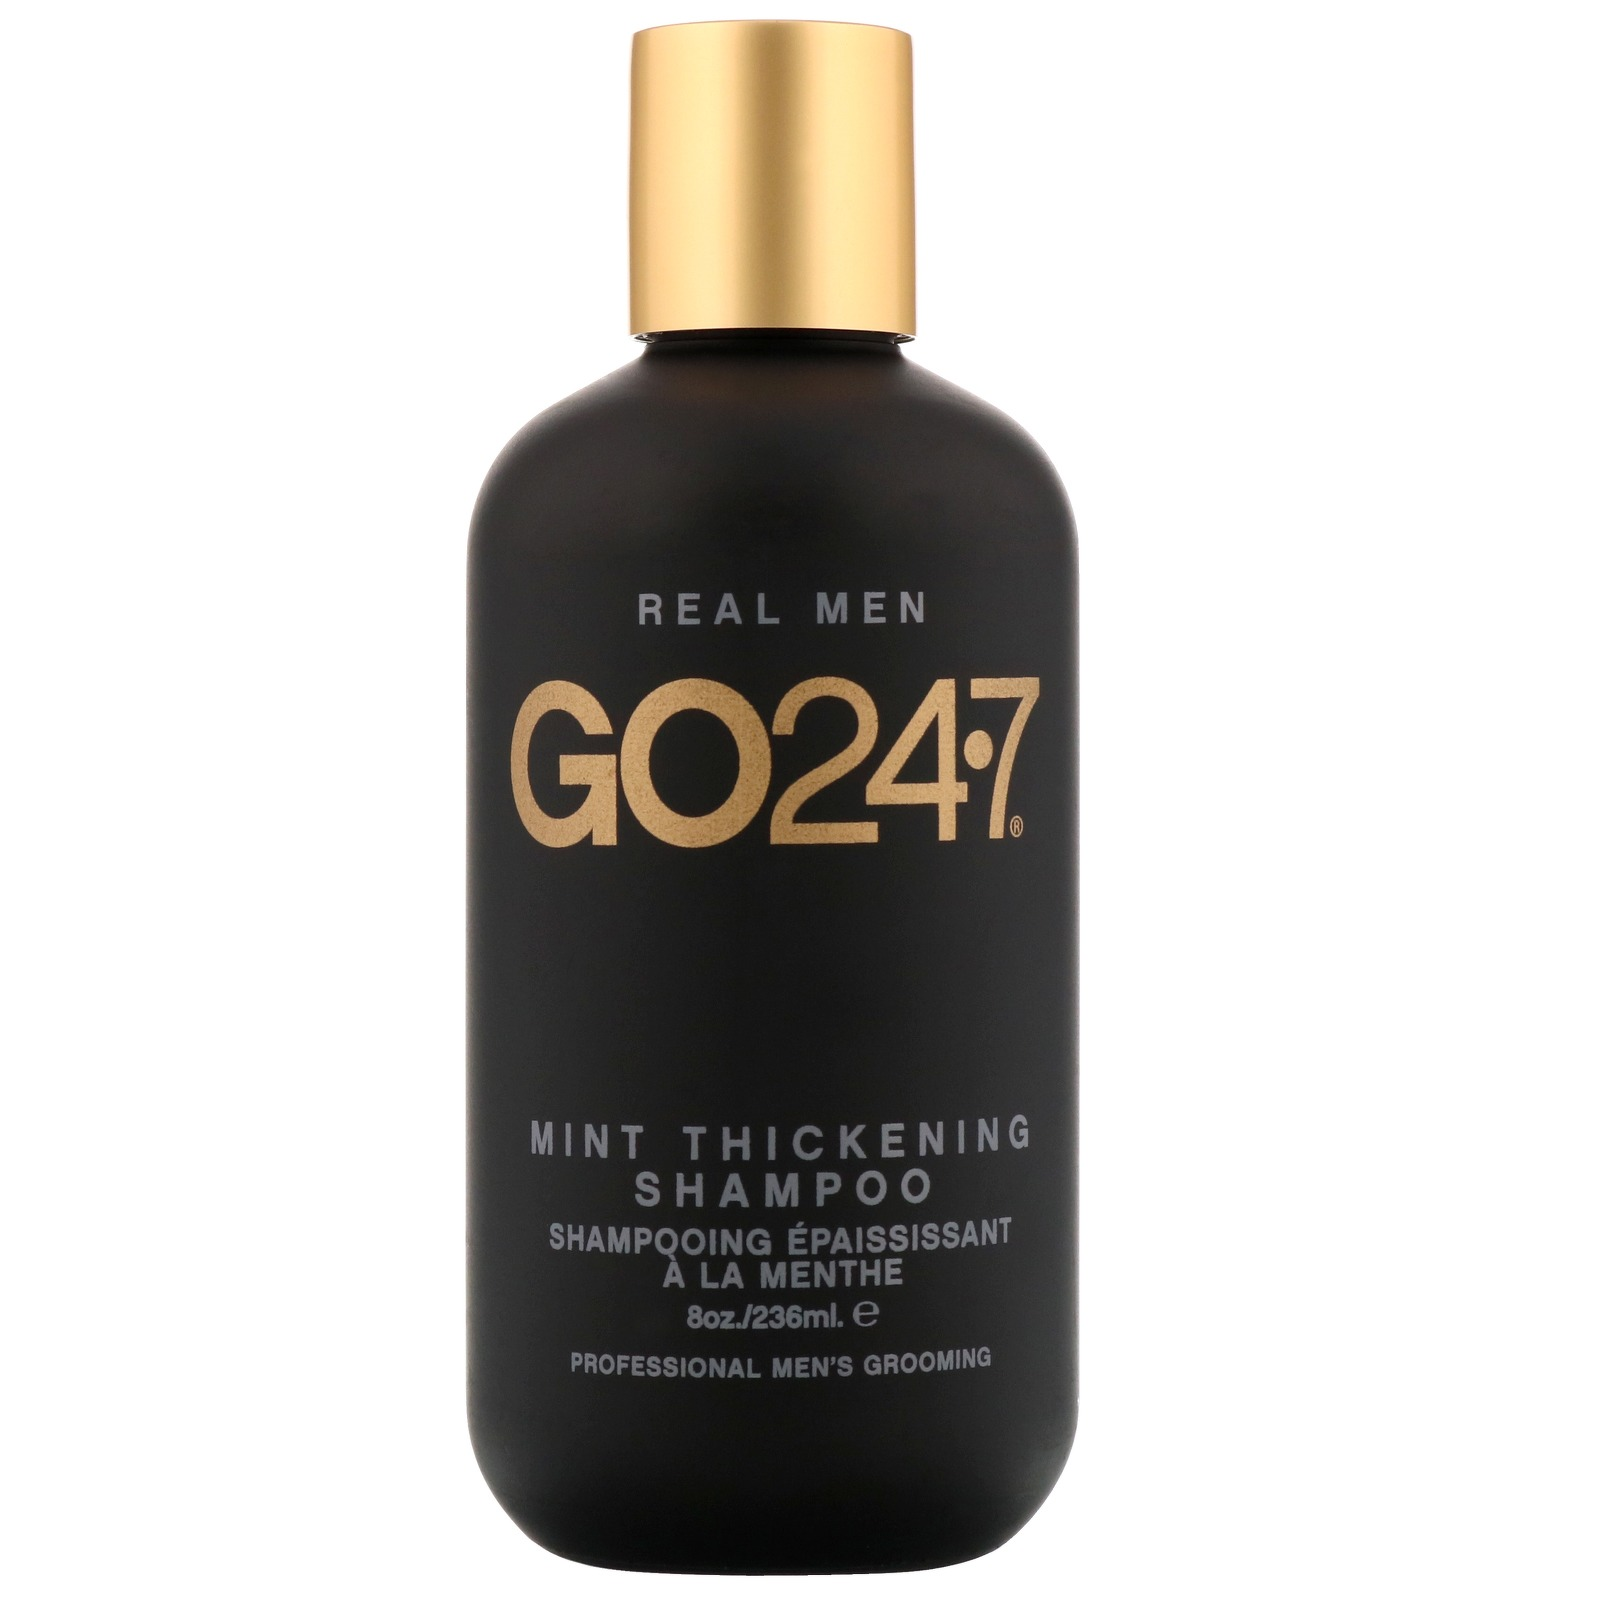 GO24.7 Cleanse & Condition Menta l'ispessimento Shampoo ml 236/8 oz.